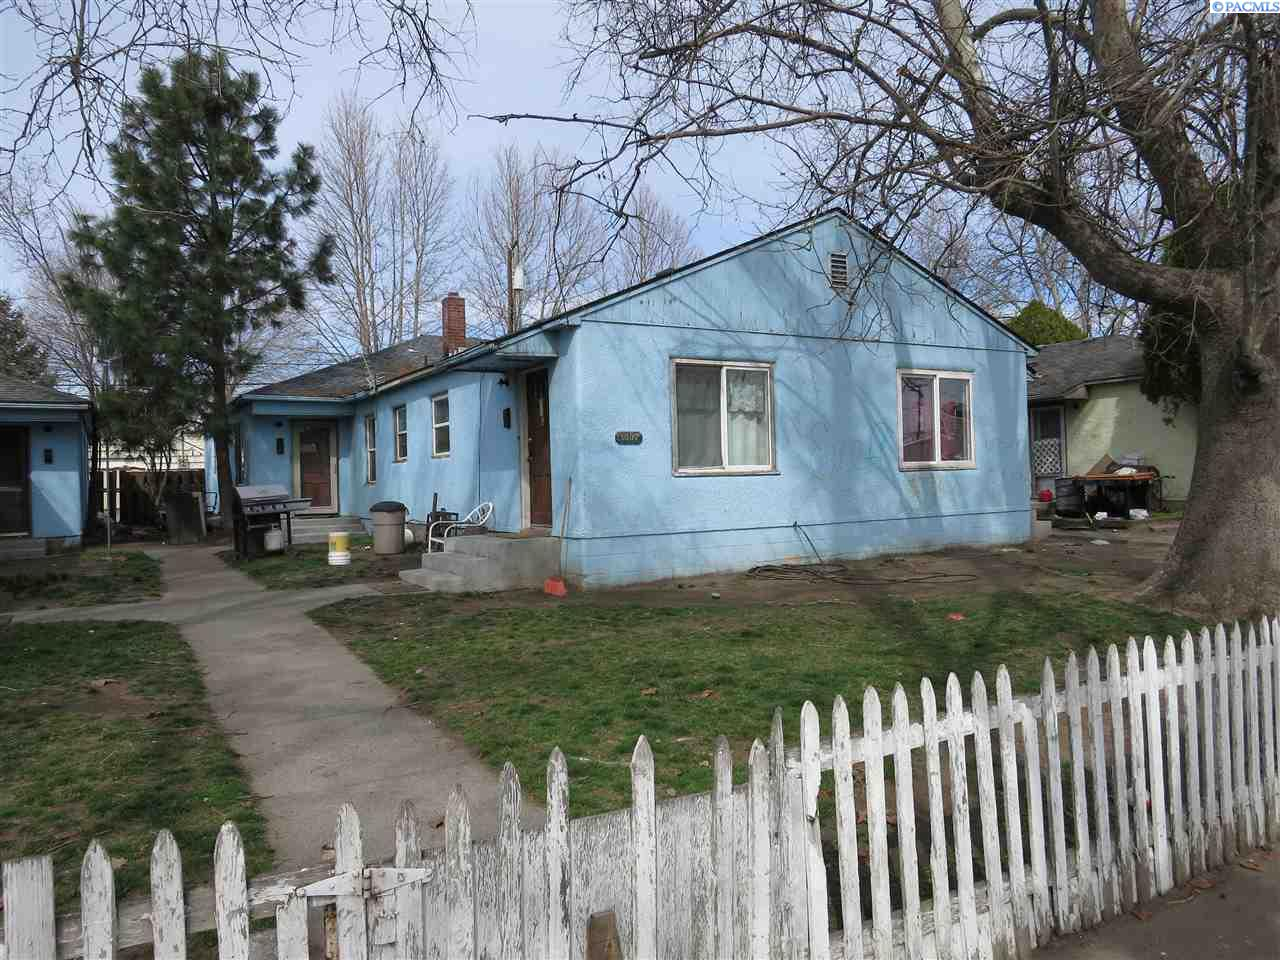 Multi-Family Homes for Sale at 1303-1311 Shoshone Street Pasco, Washington 99301 United States